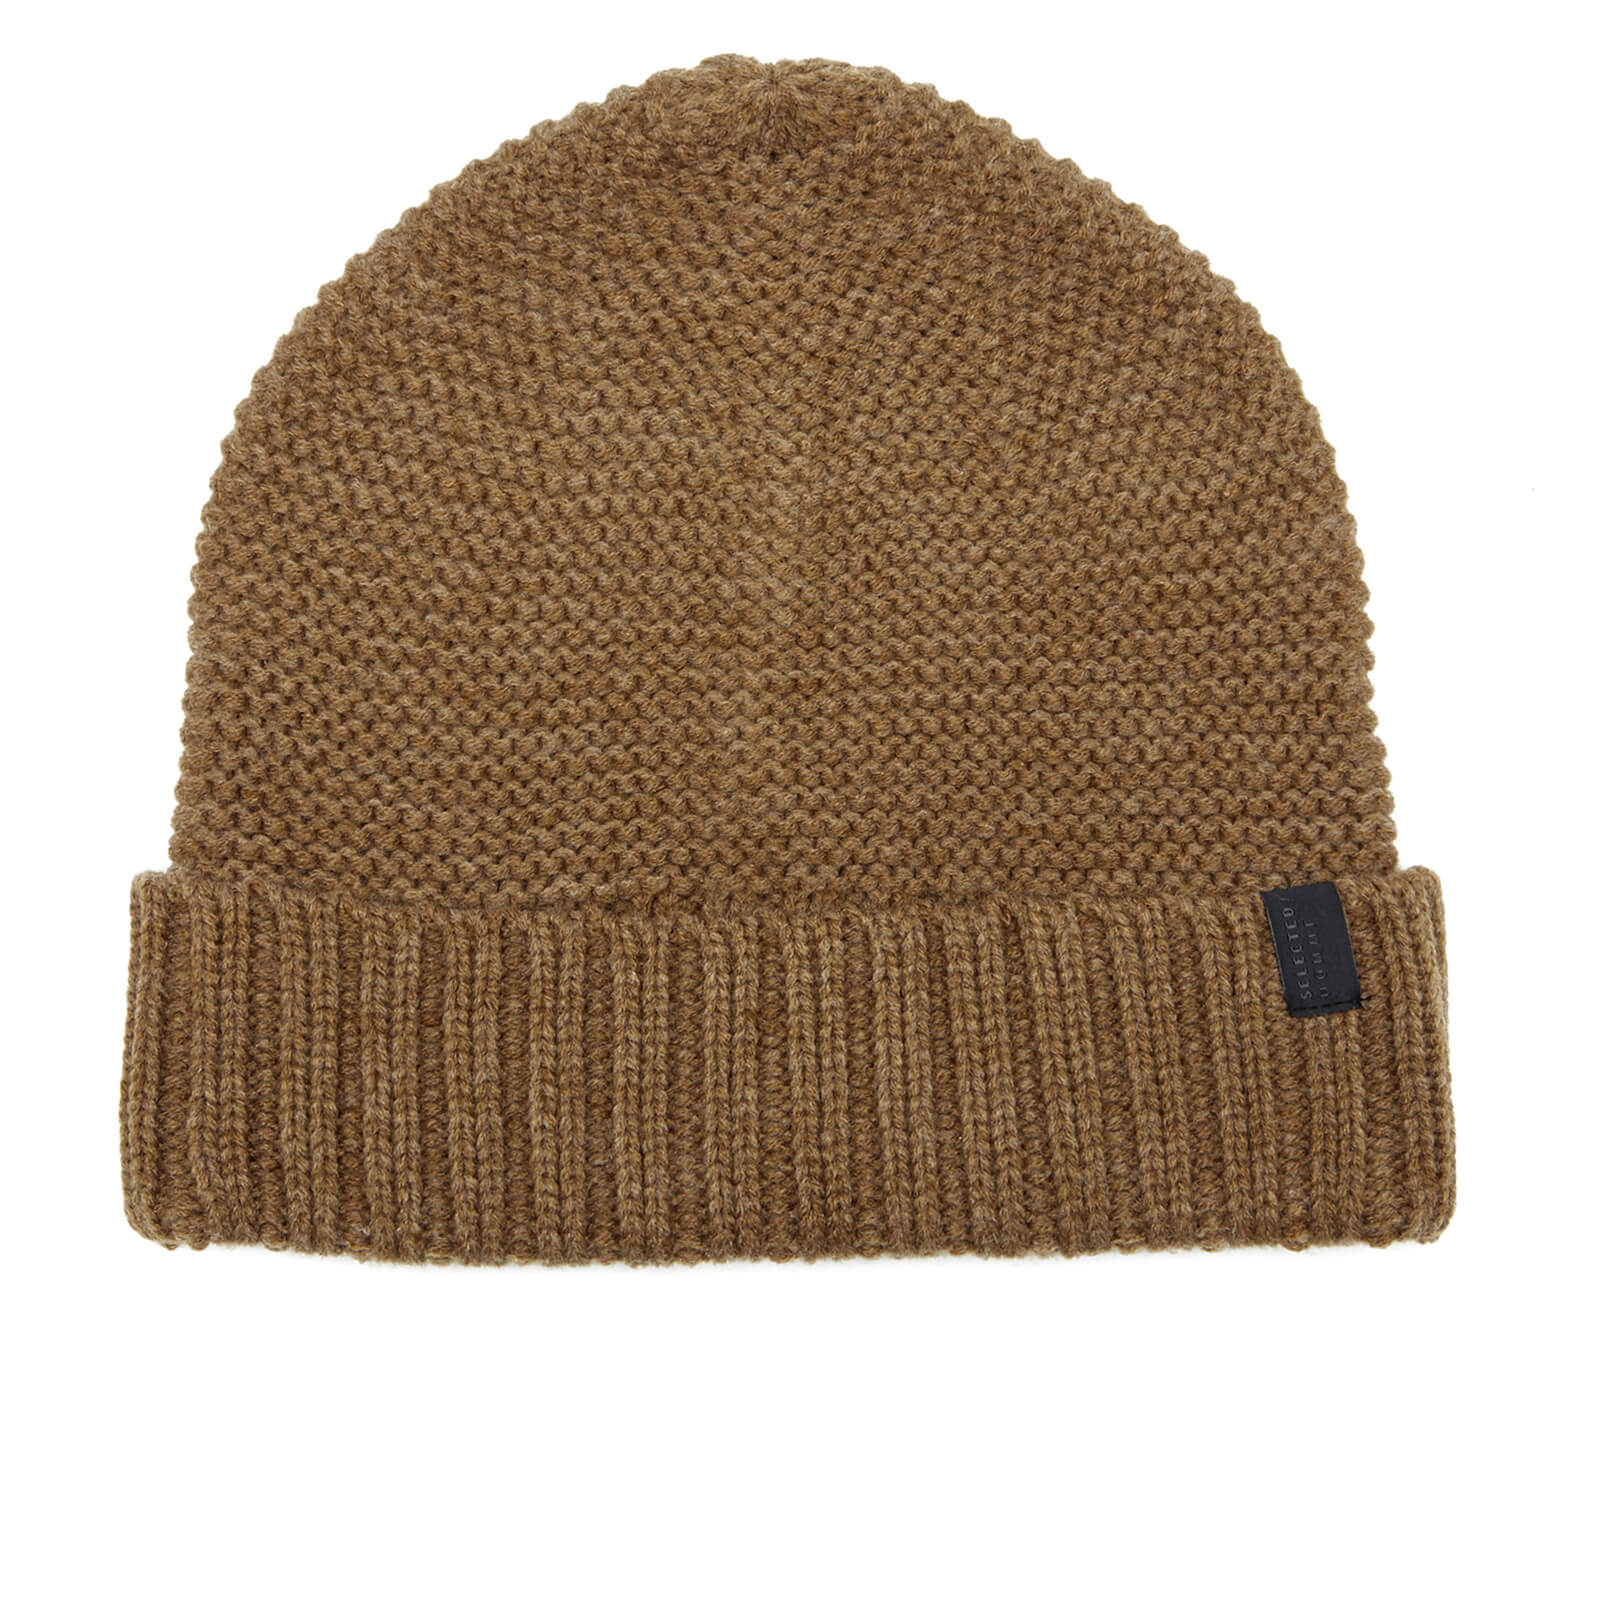 ae24ad7c8 Selected Homme Men's Grit Beanie - Otter